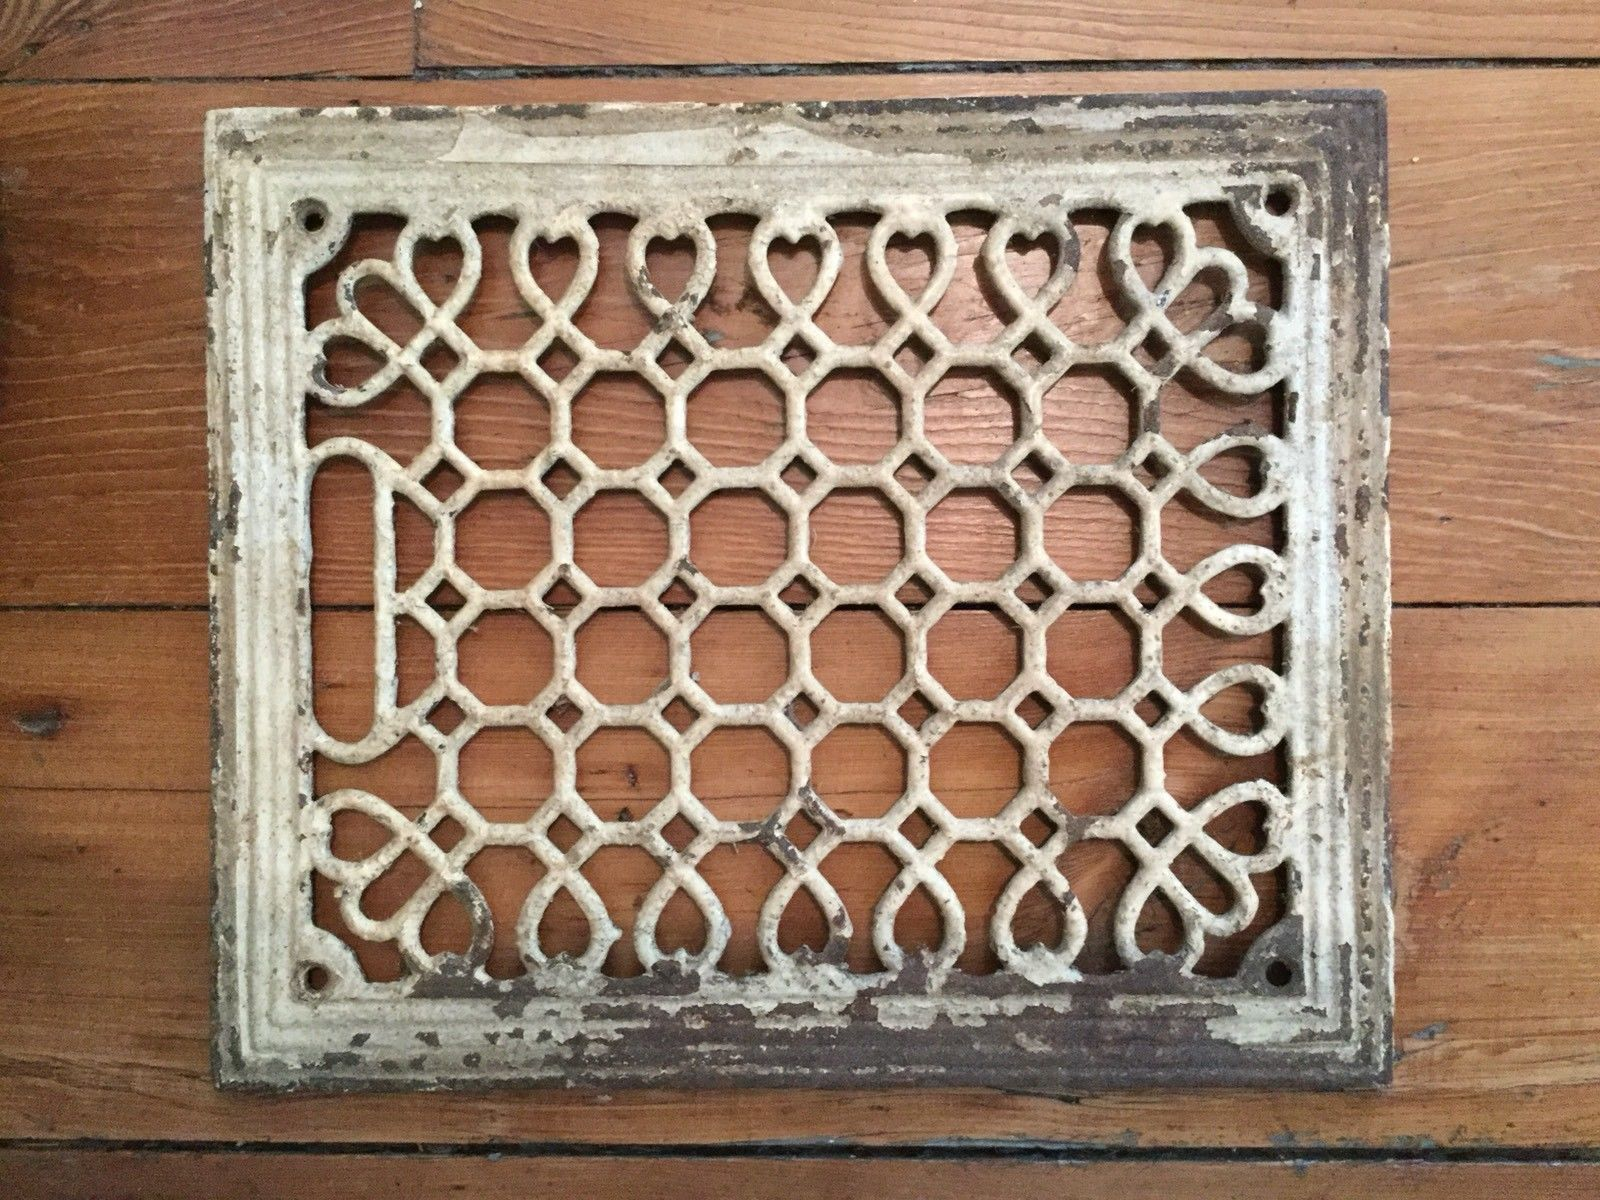 Antique Victorian Ornate Cast Iron Heat Grate Vent Register 9 3 4 X 11 1 2 Ebay Antique Cast Iron Bathroom Fan Floor Vents